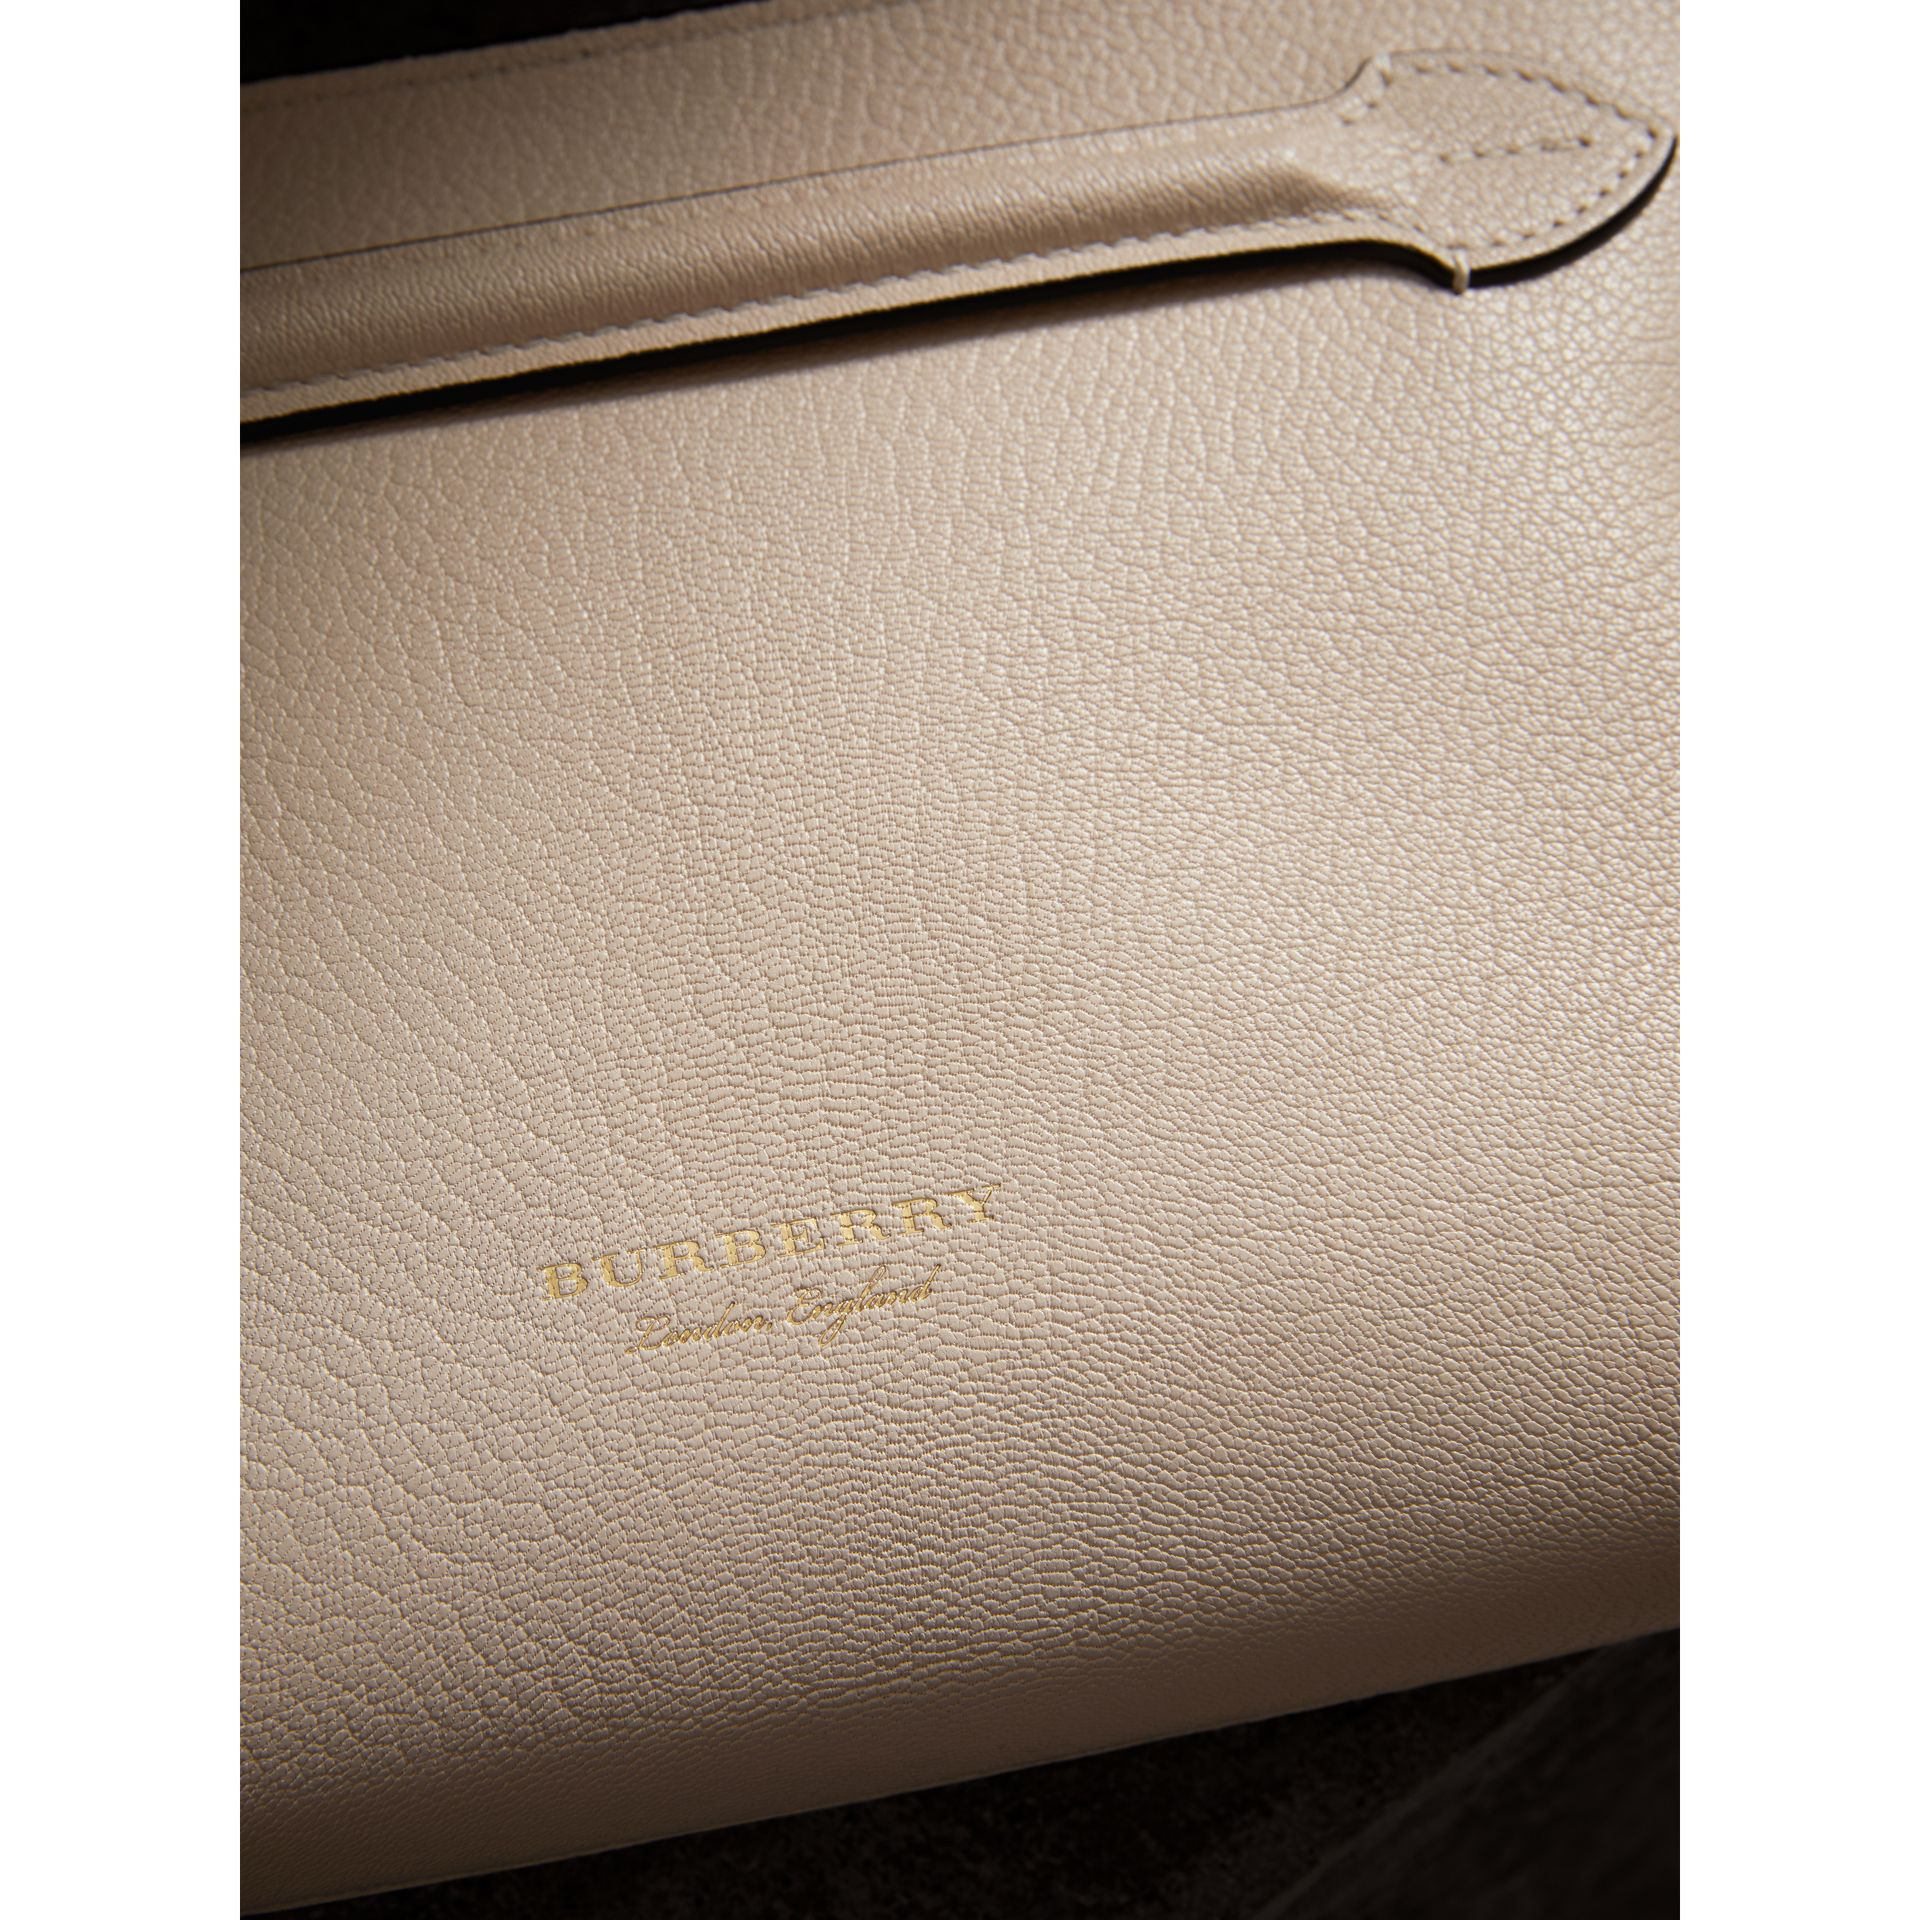 Grainy Leather Wristlet Clutch in Stone - Women | Burberry - gallery image 1